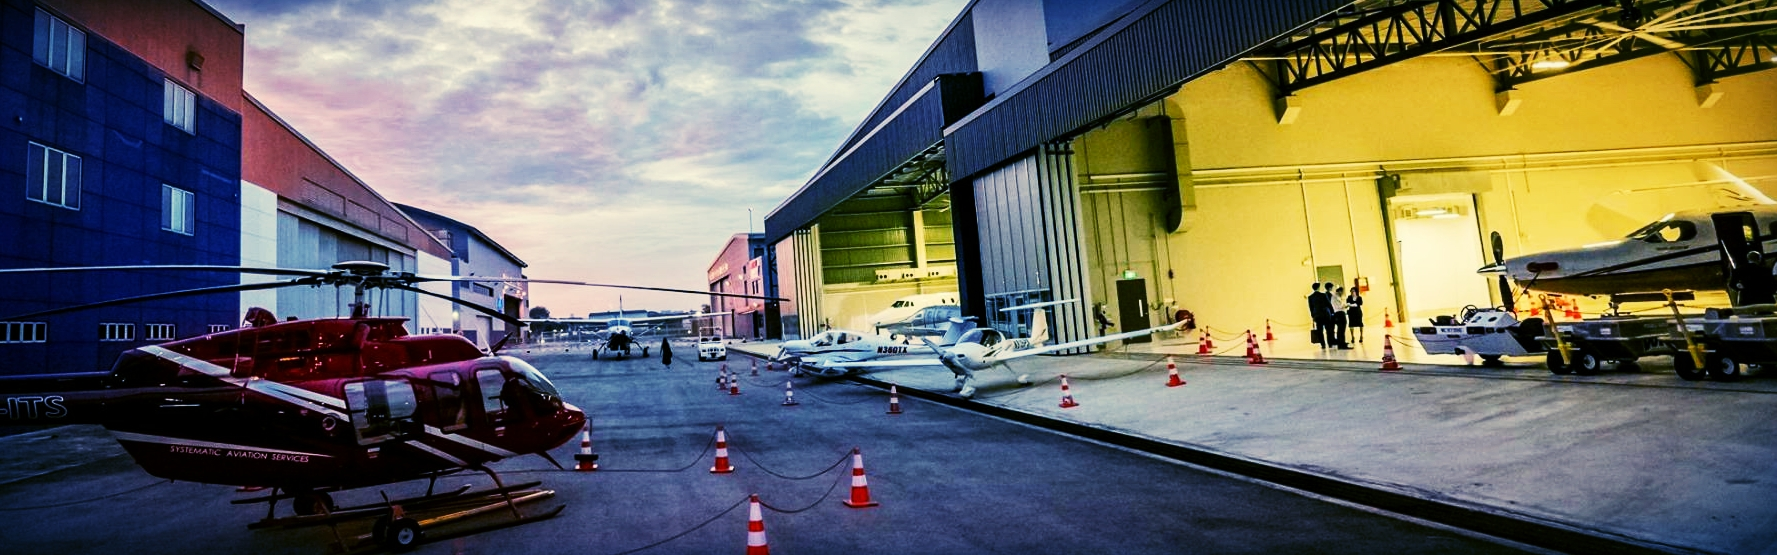 wholly owned hangar facility with runway access